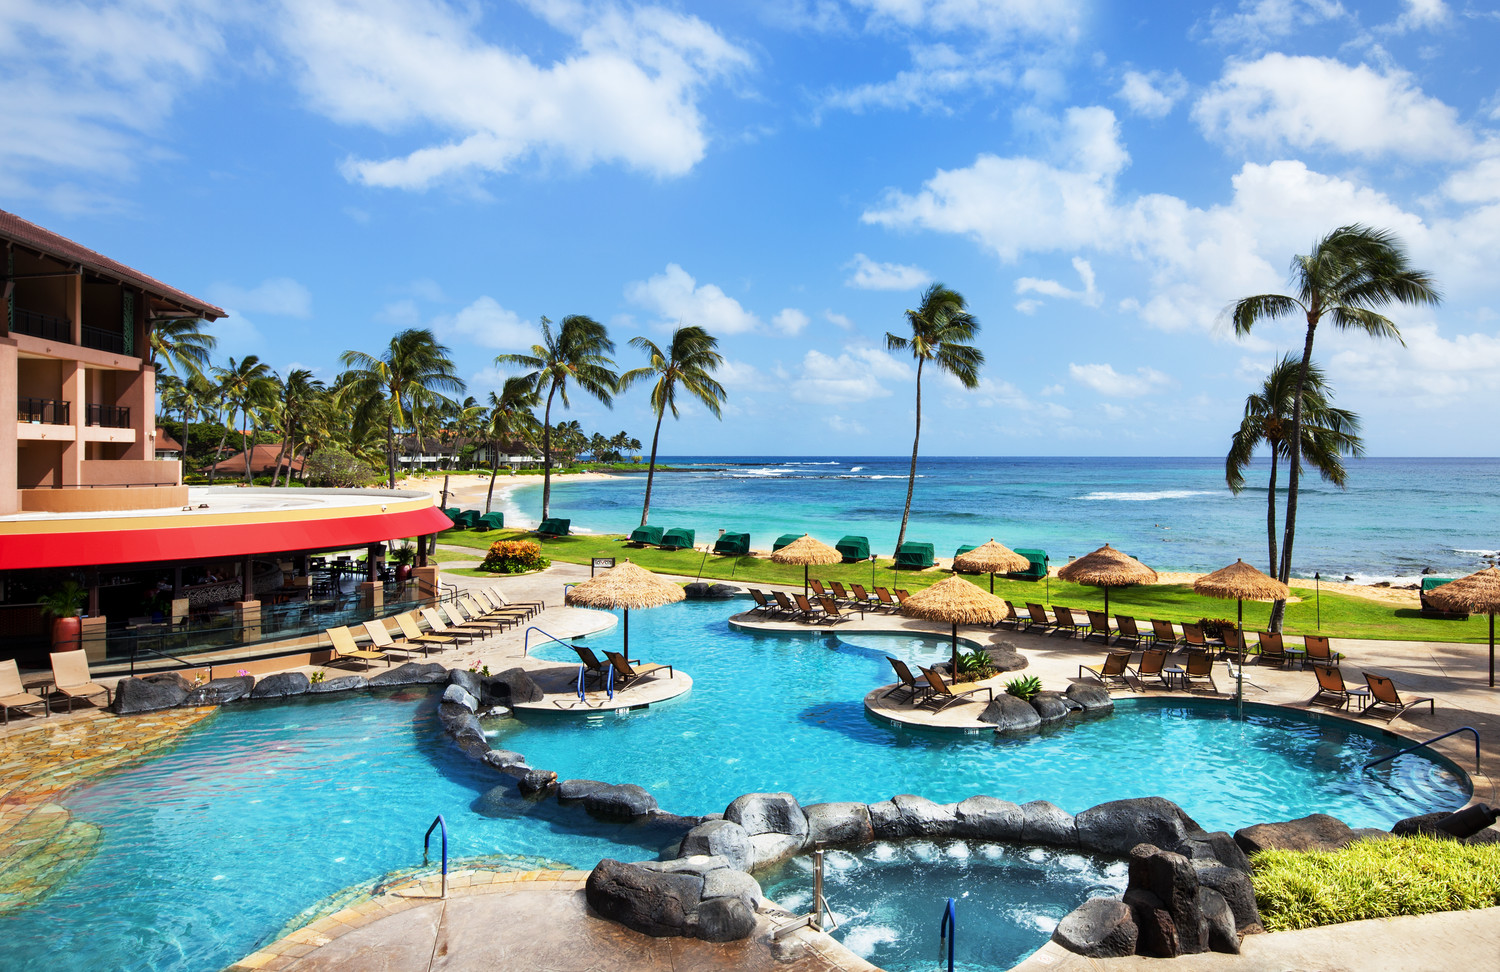 Sheraton Kauai Resort Ocean Pool oceanfront swimming pool at hotel Hawaii